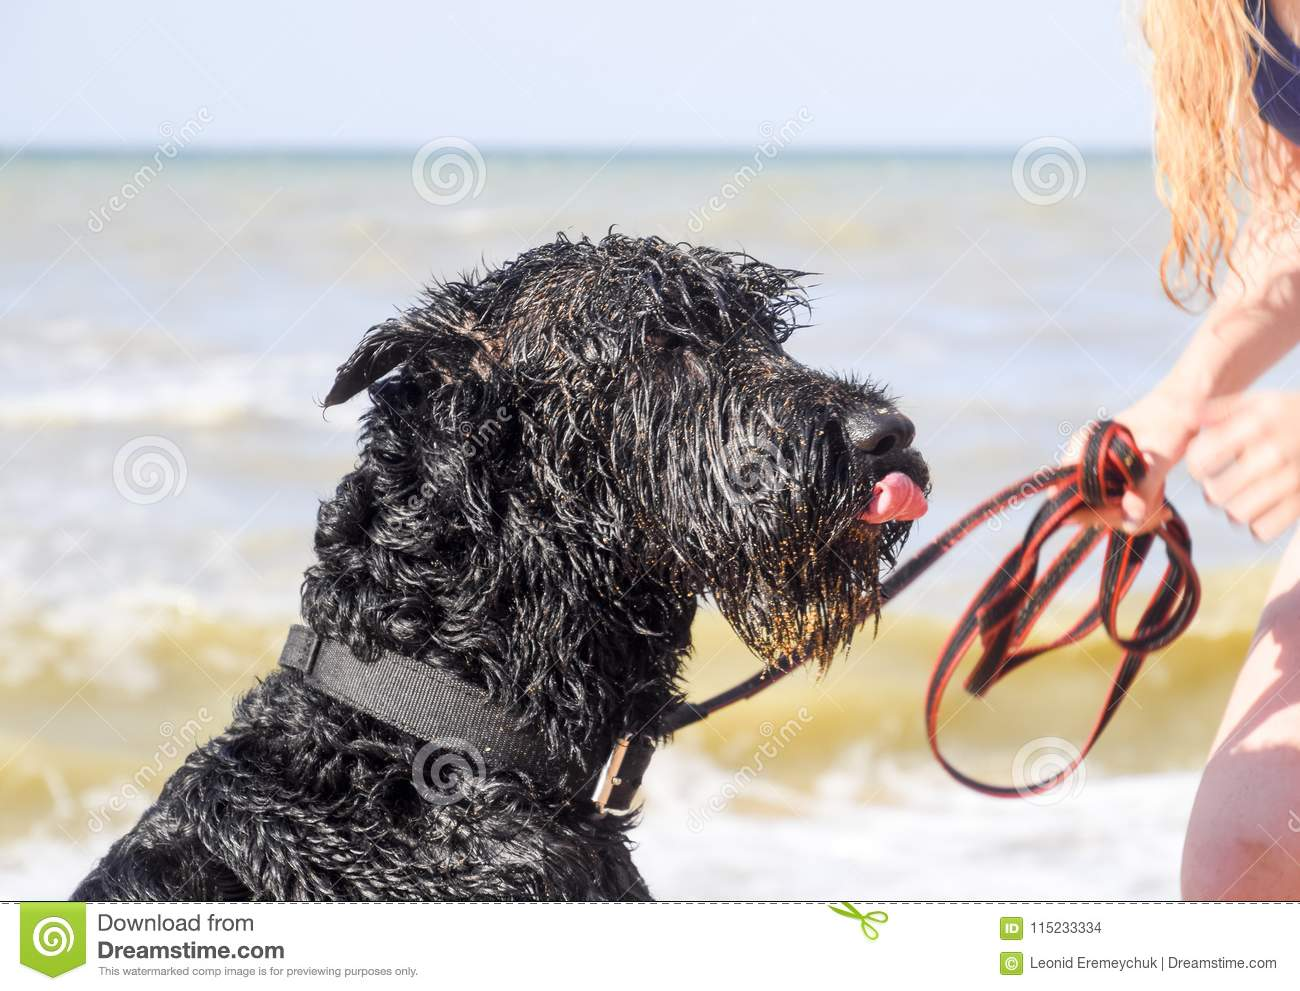 A black curly dog on a leash licks